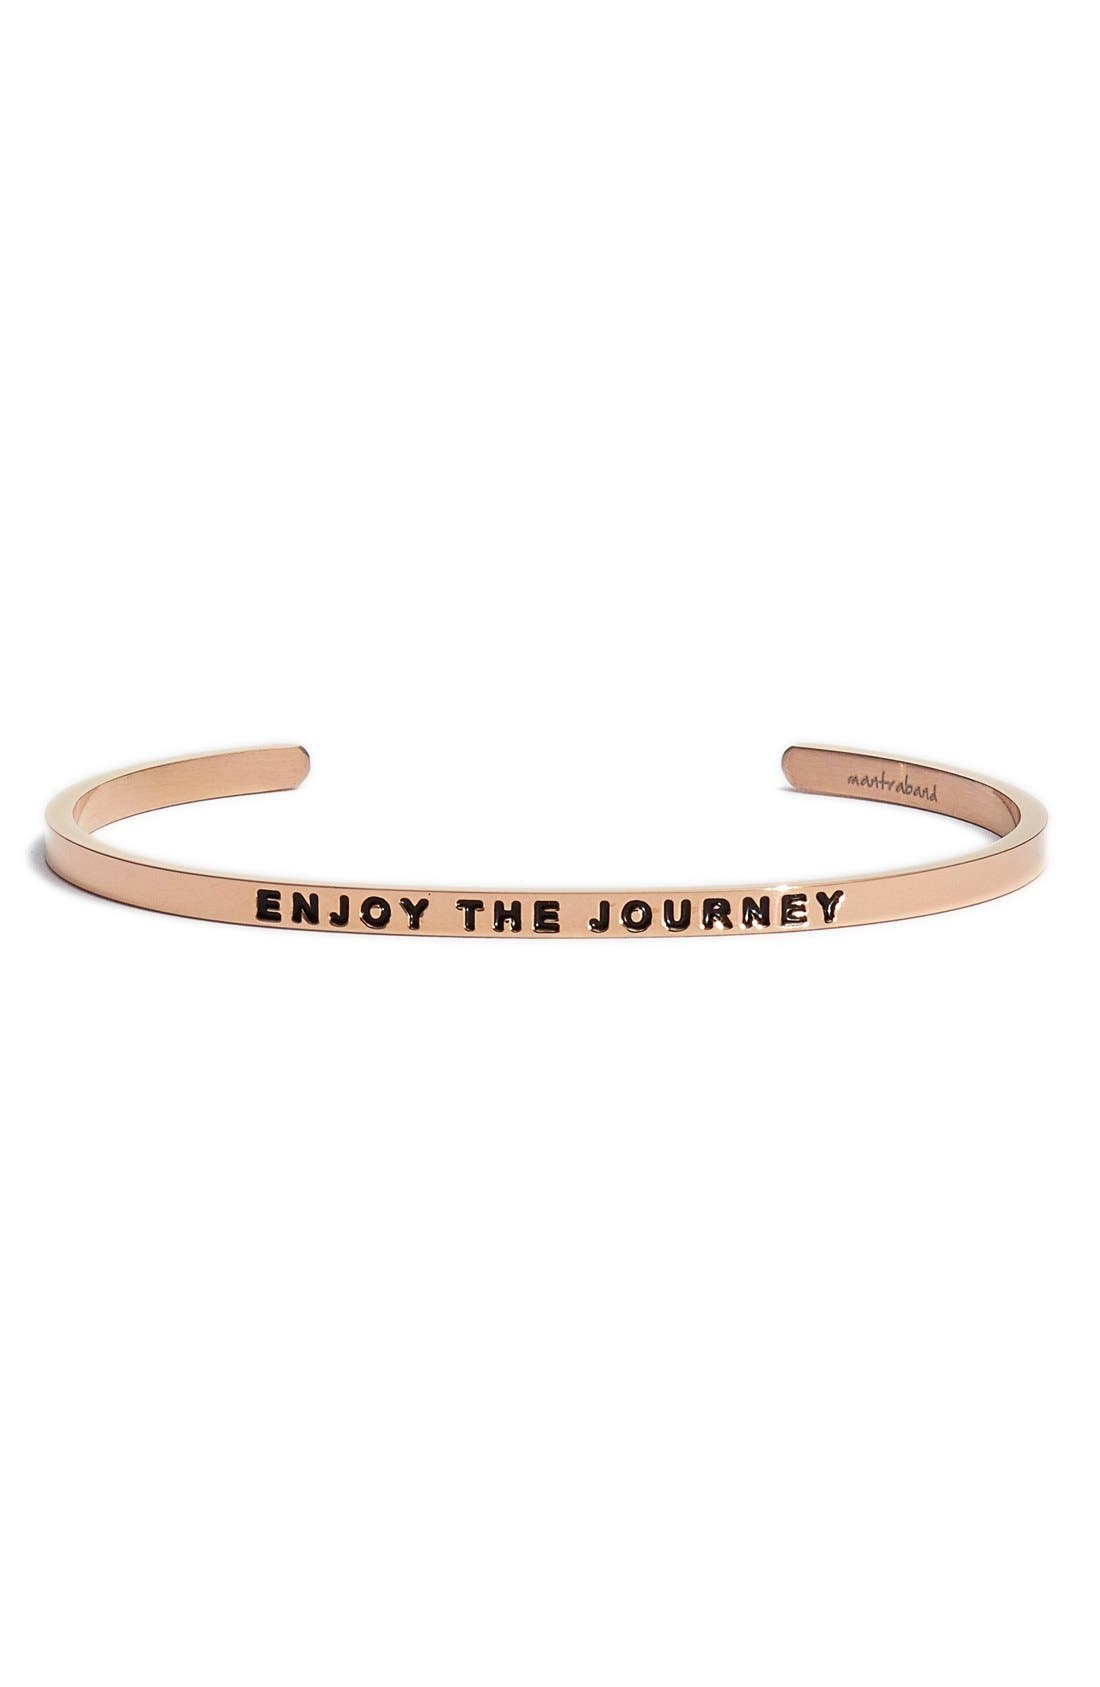 'Enjoy the Journey' Cuff,                         Main,                         color, ROSE GOLD